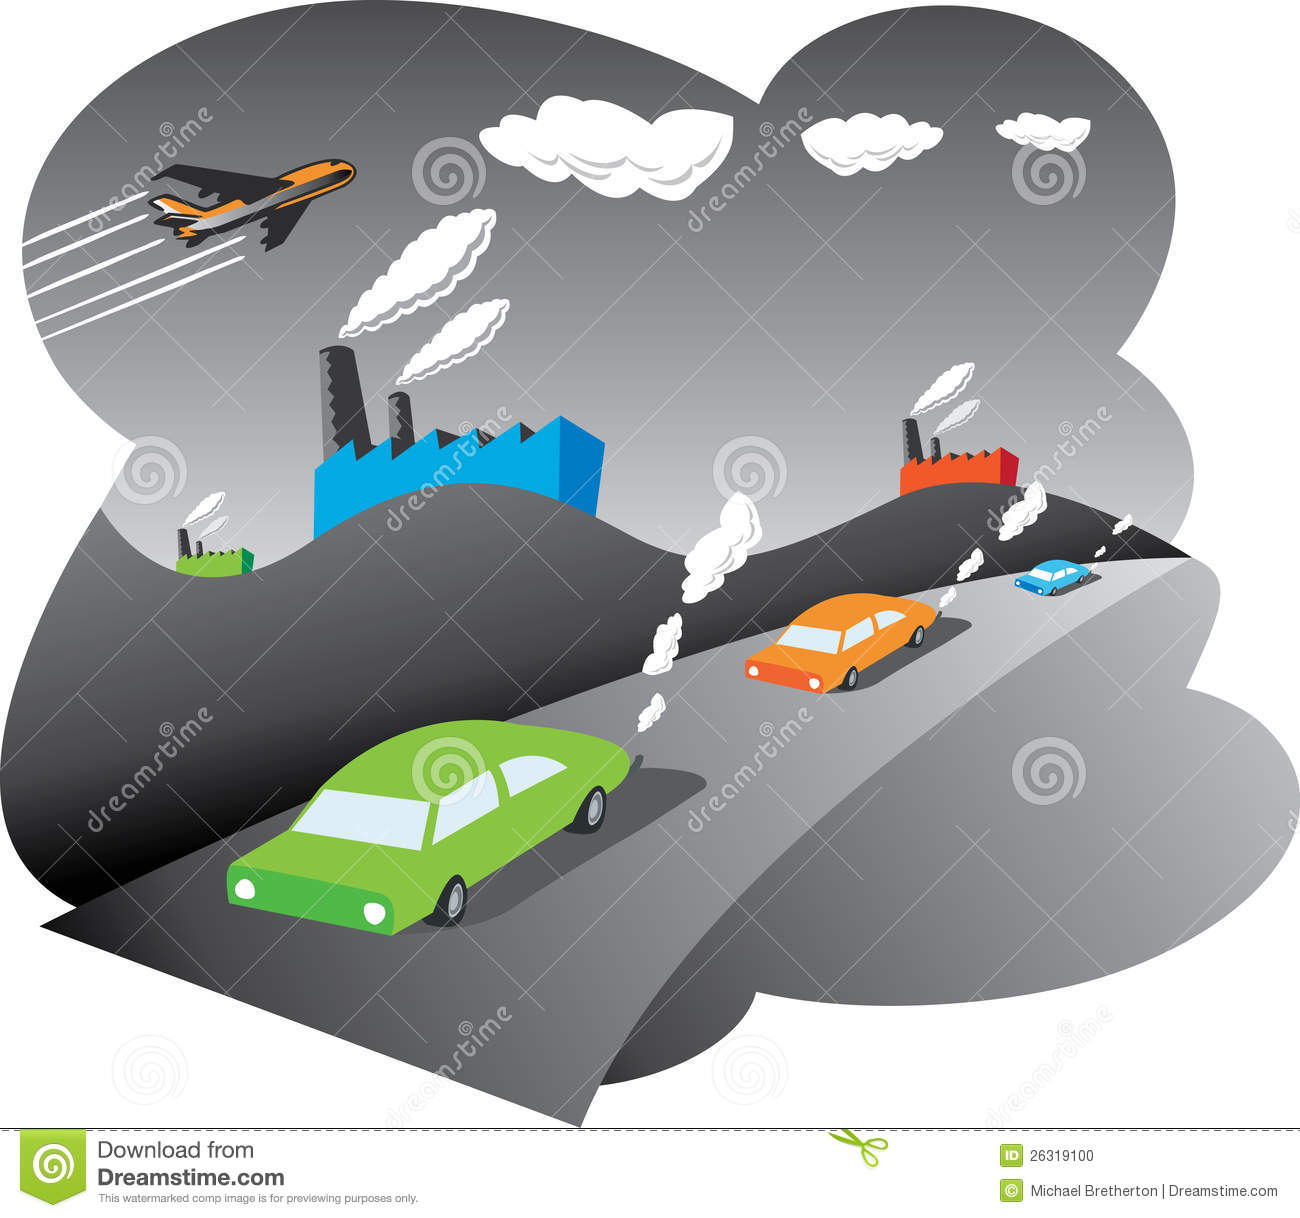 Air Pollution Stock Photo - Image: 26319100